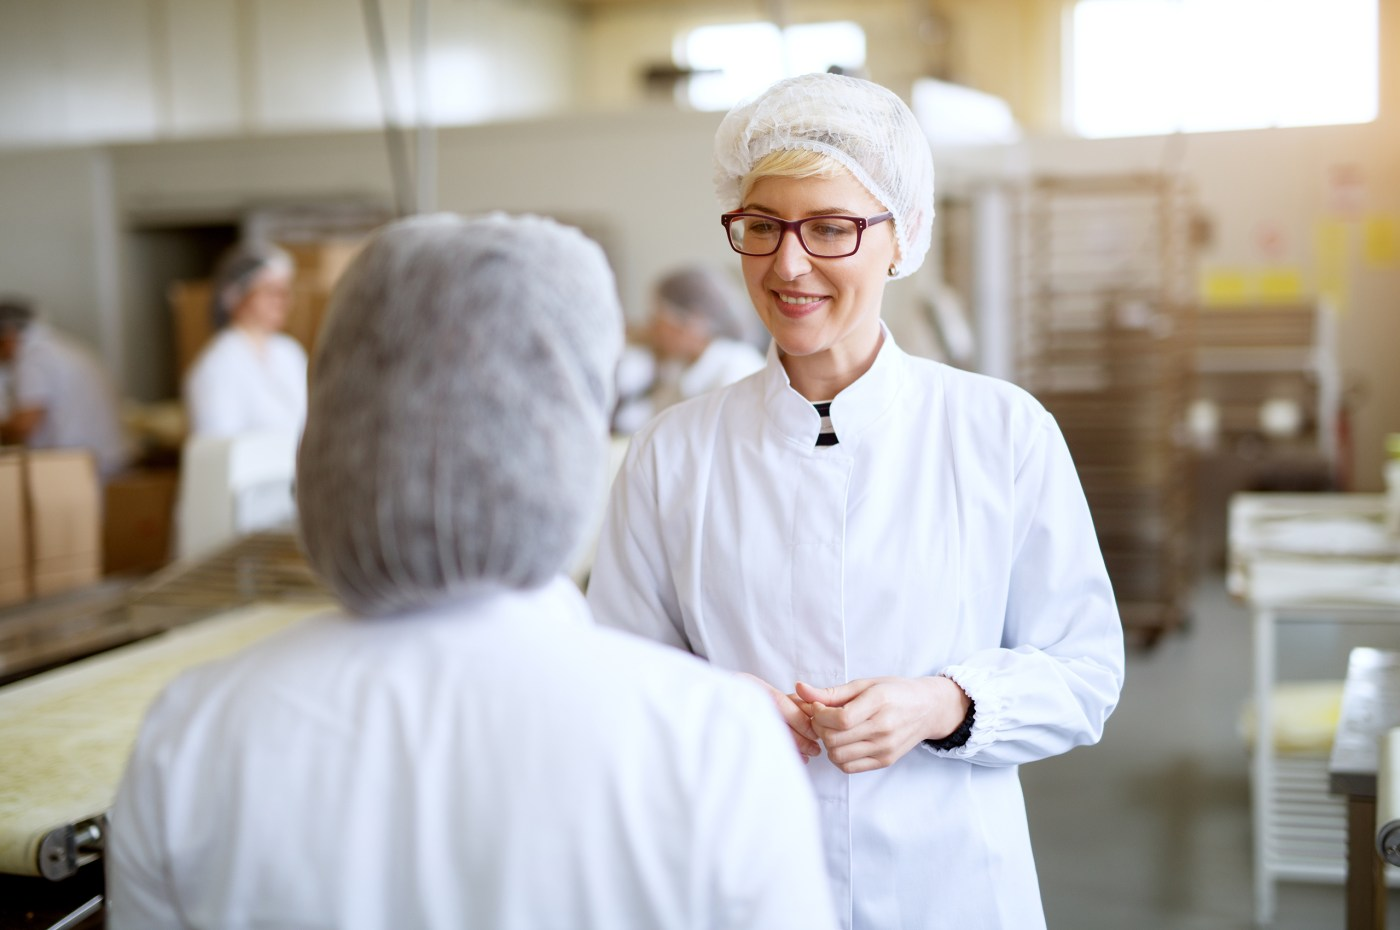 Two workers wearing hairnets and while coats stand in what looks like a factory. One has their back to the camera and is a bit shorter, The other is a white woman, she is smiling and looking into the face of the other worker. The background is blurred.